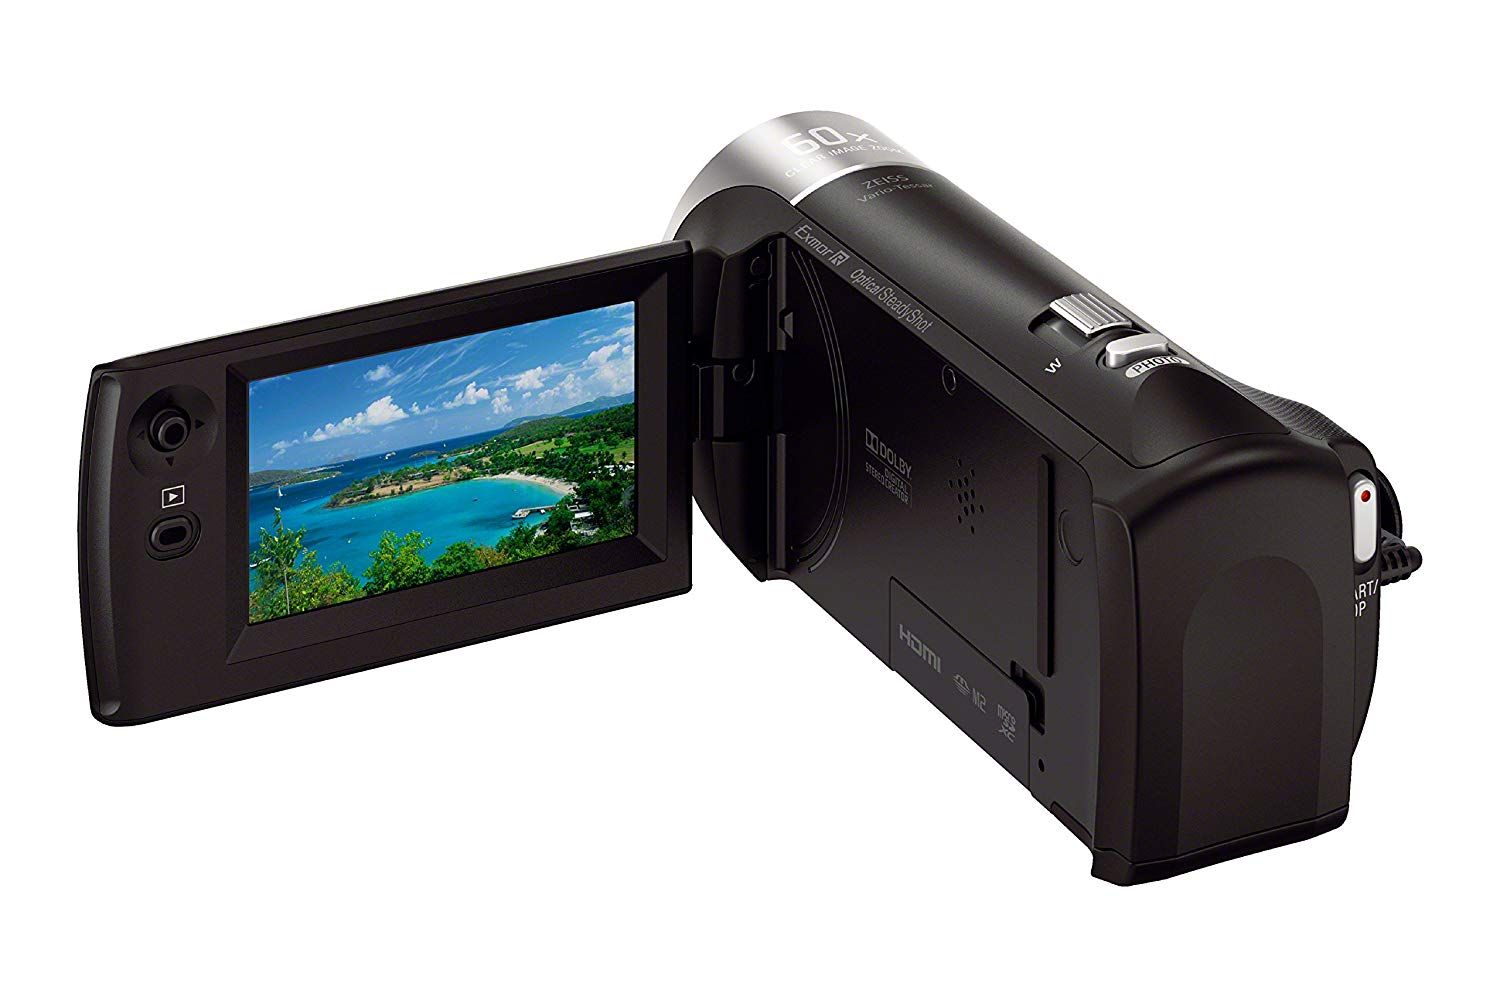 2fb27a69b16 SONY Handycam HDR-CX470 is a professional camcorder. It is on sale below  25000 Rupees. Sony is the best brand for a Camcorder